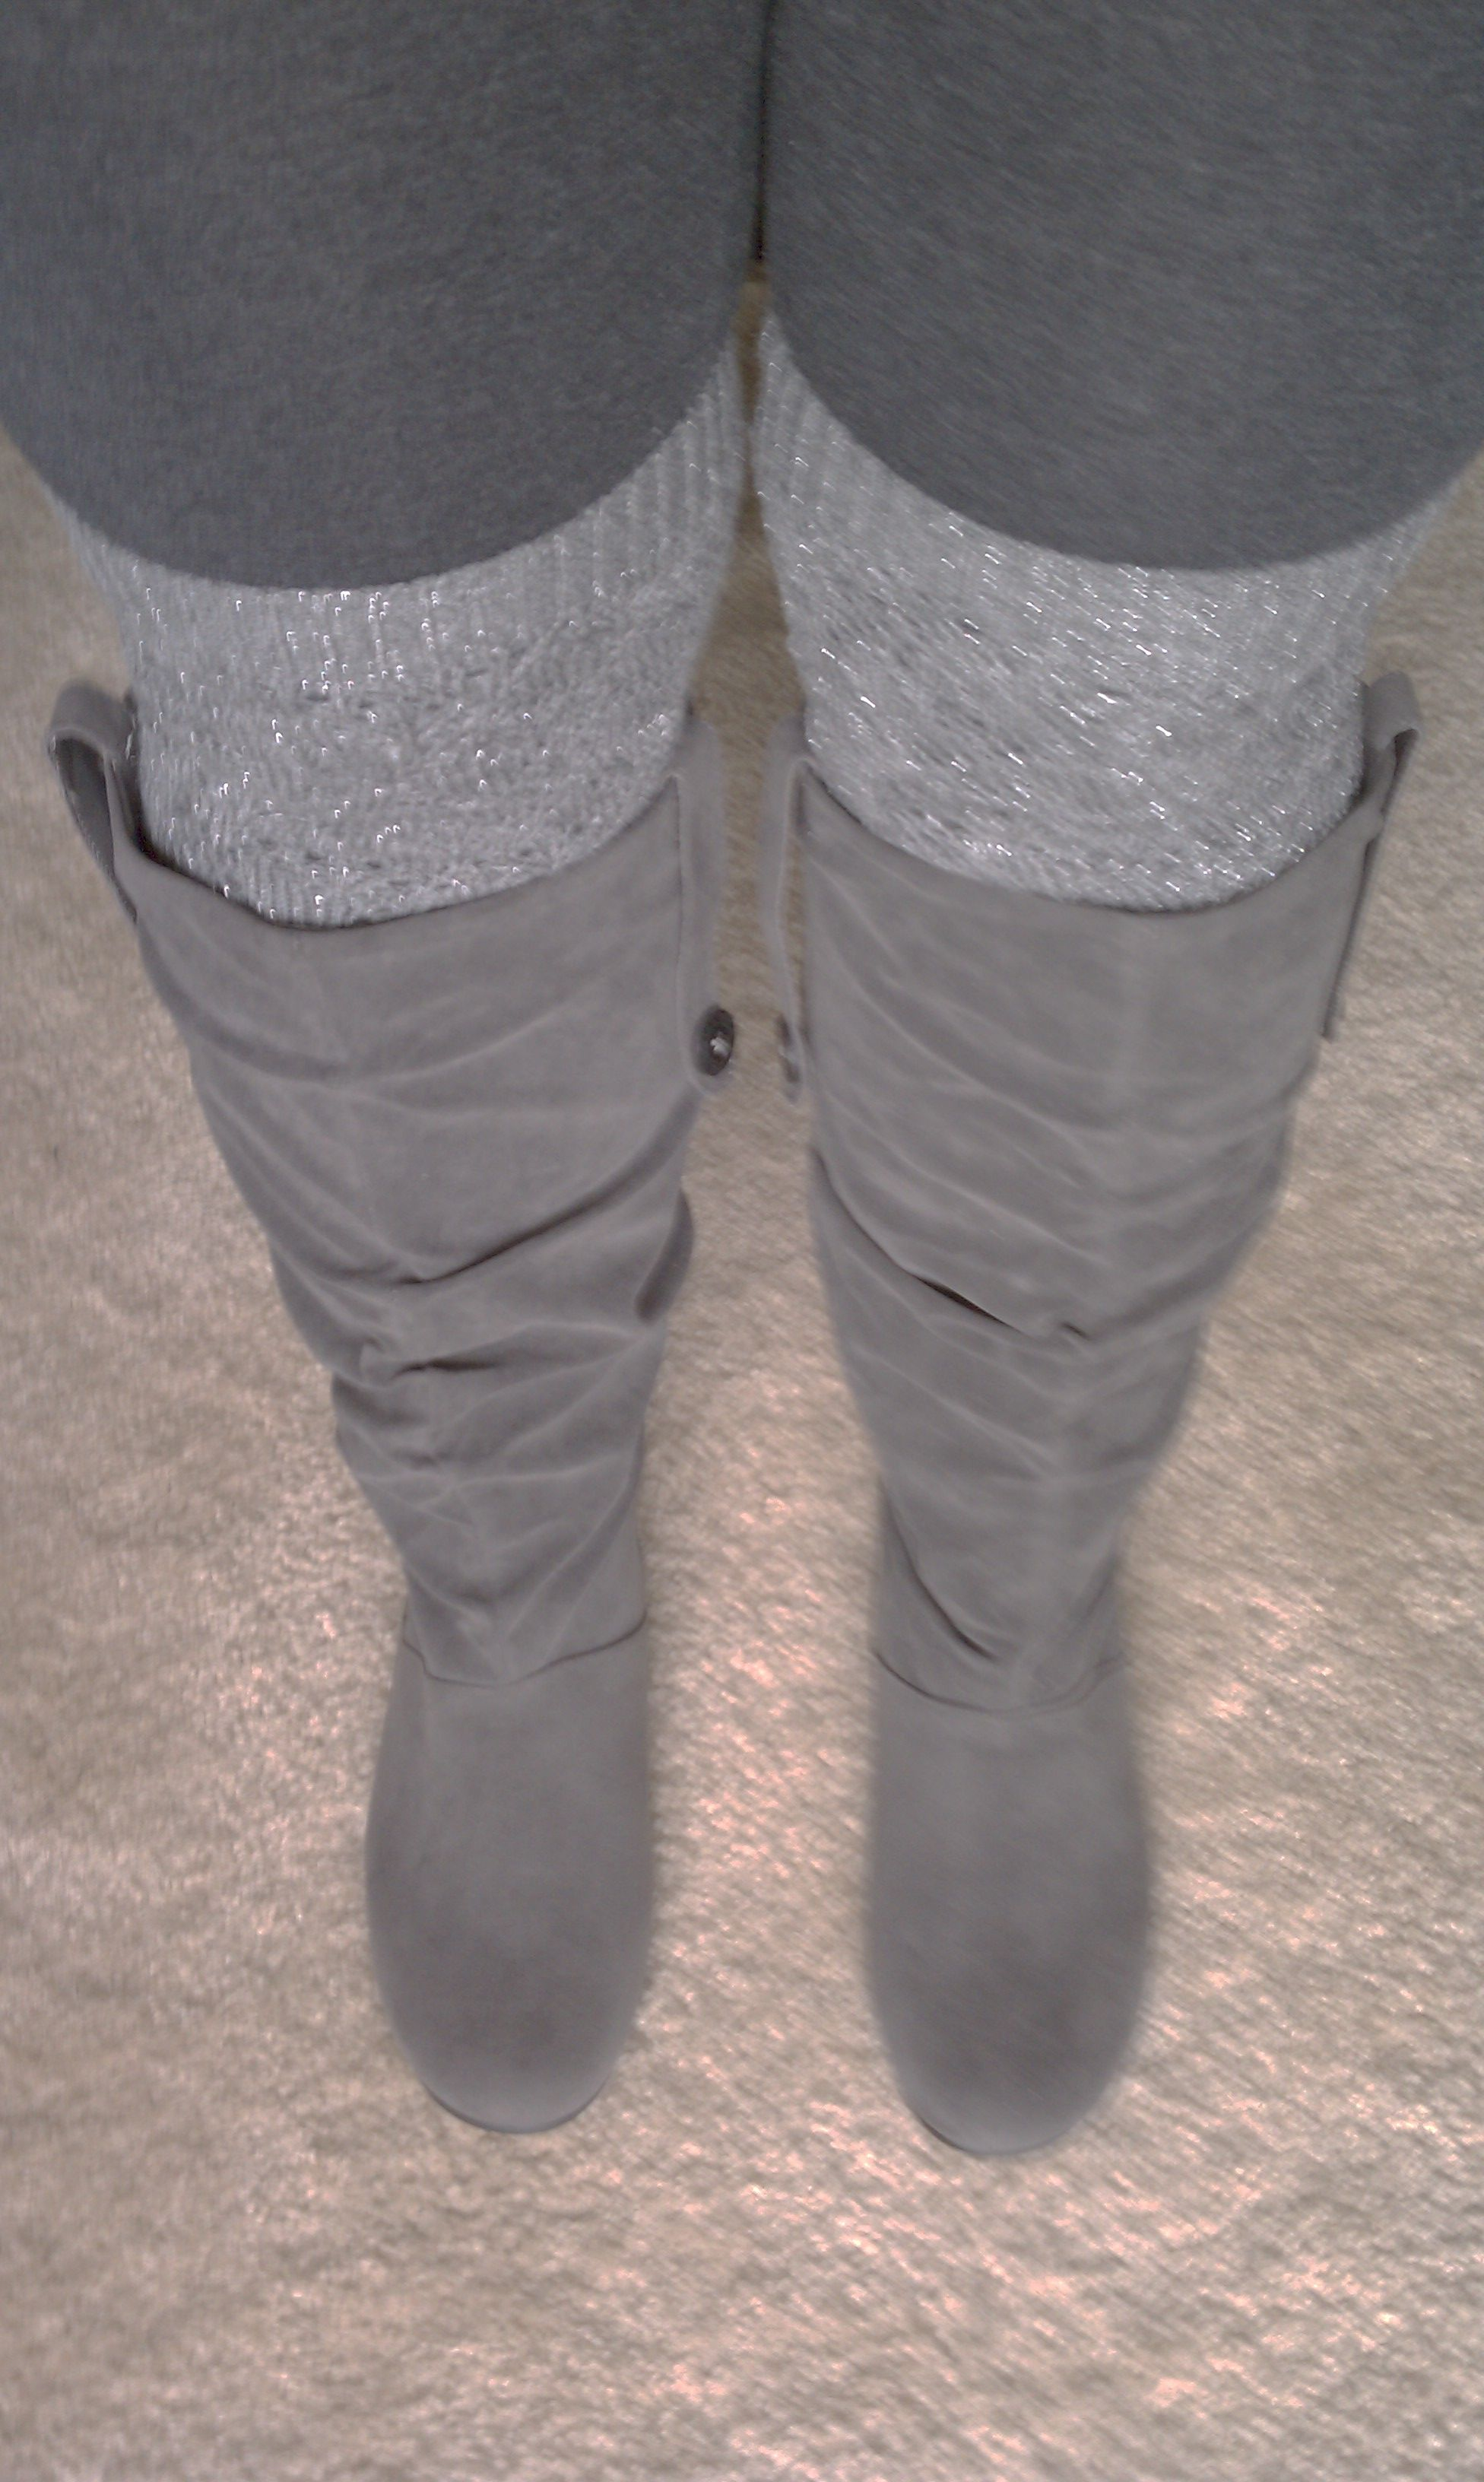 Lane Bryant boots (great for my big calves...thanks to swimming and tennis), Target gray sparkly knitted leg warmers and tights. I'm ready for fall!